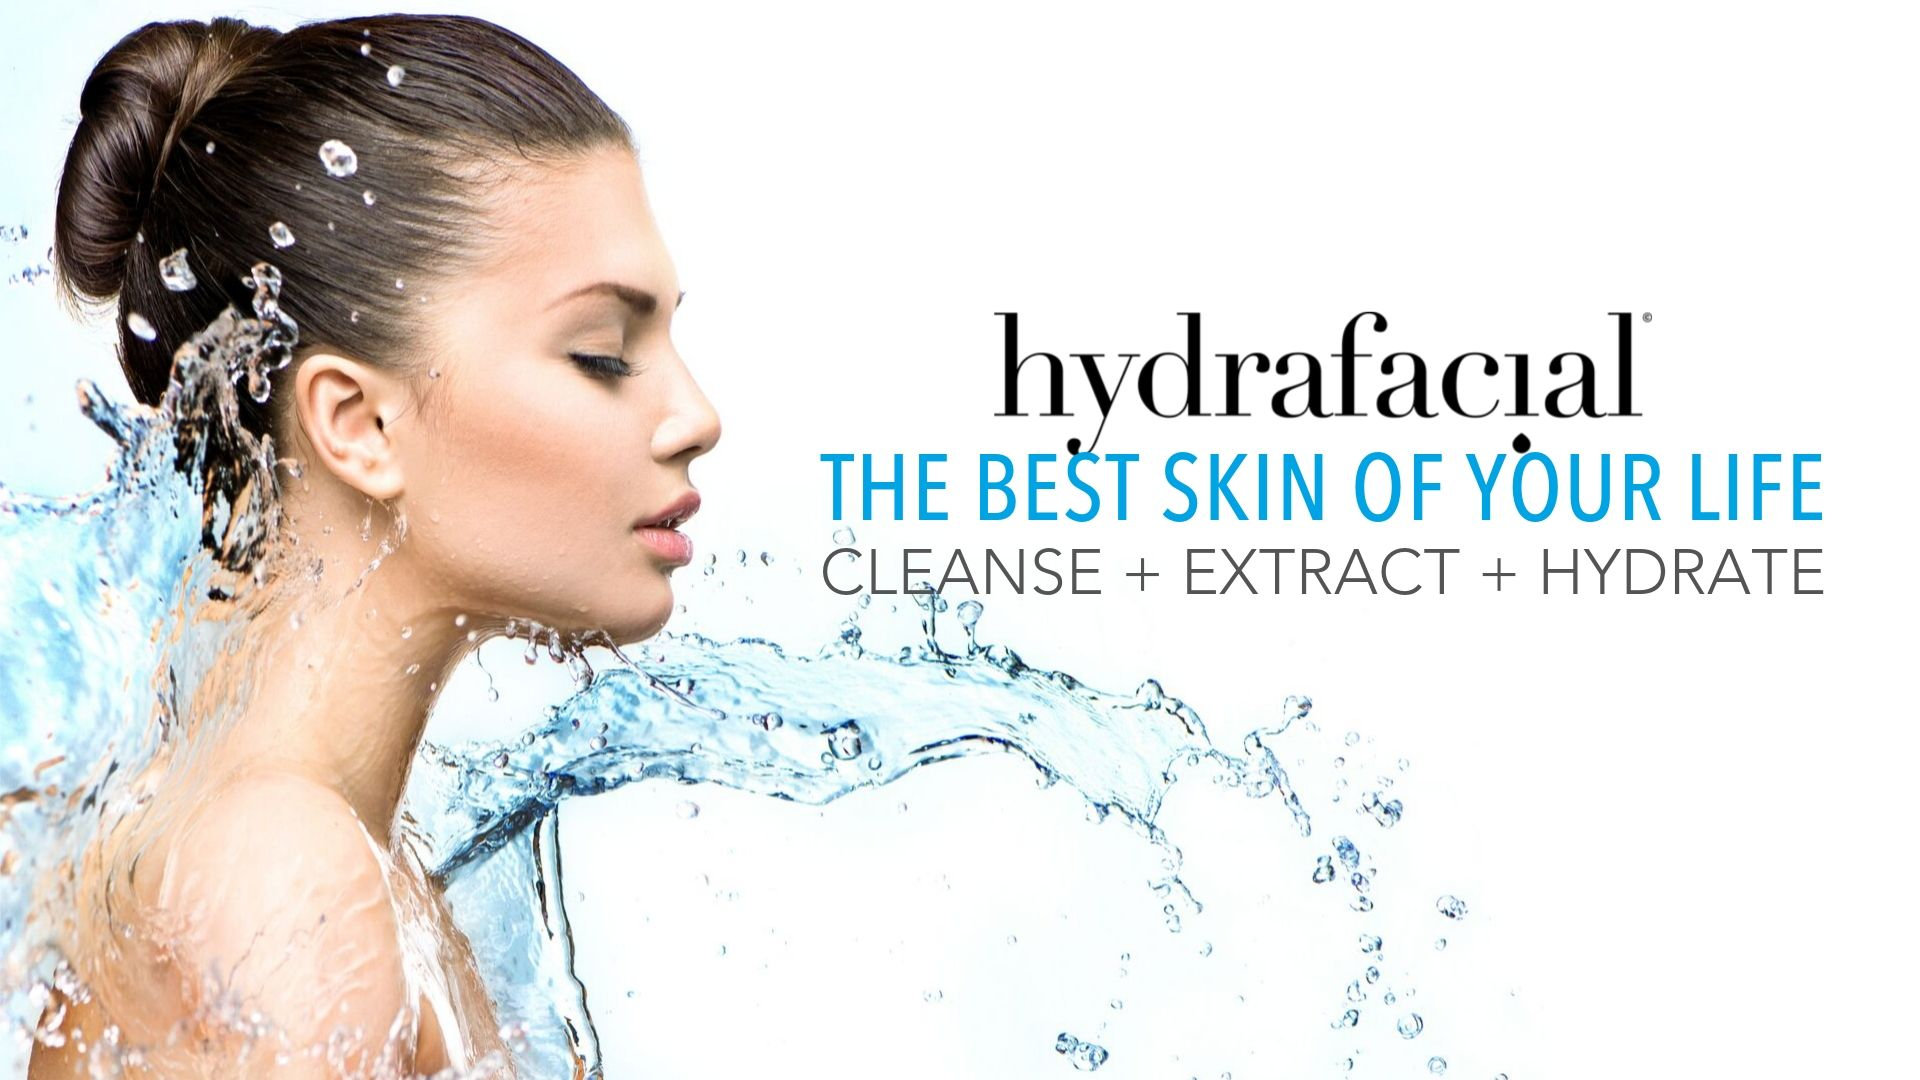 7 Facts About The HydraFacial 4